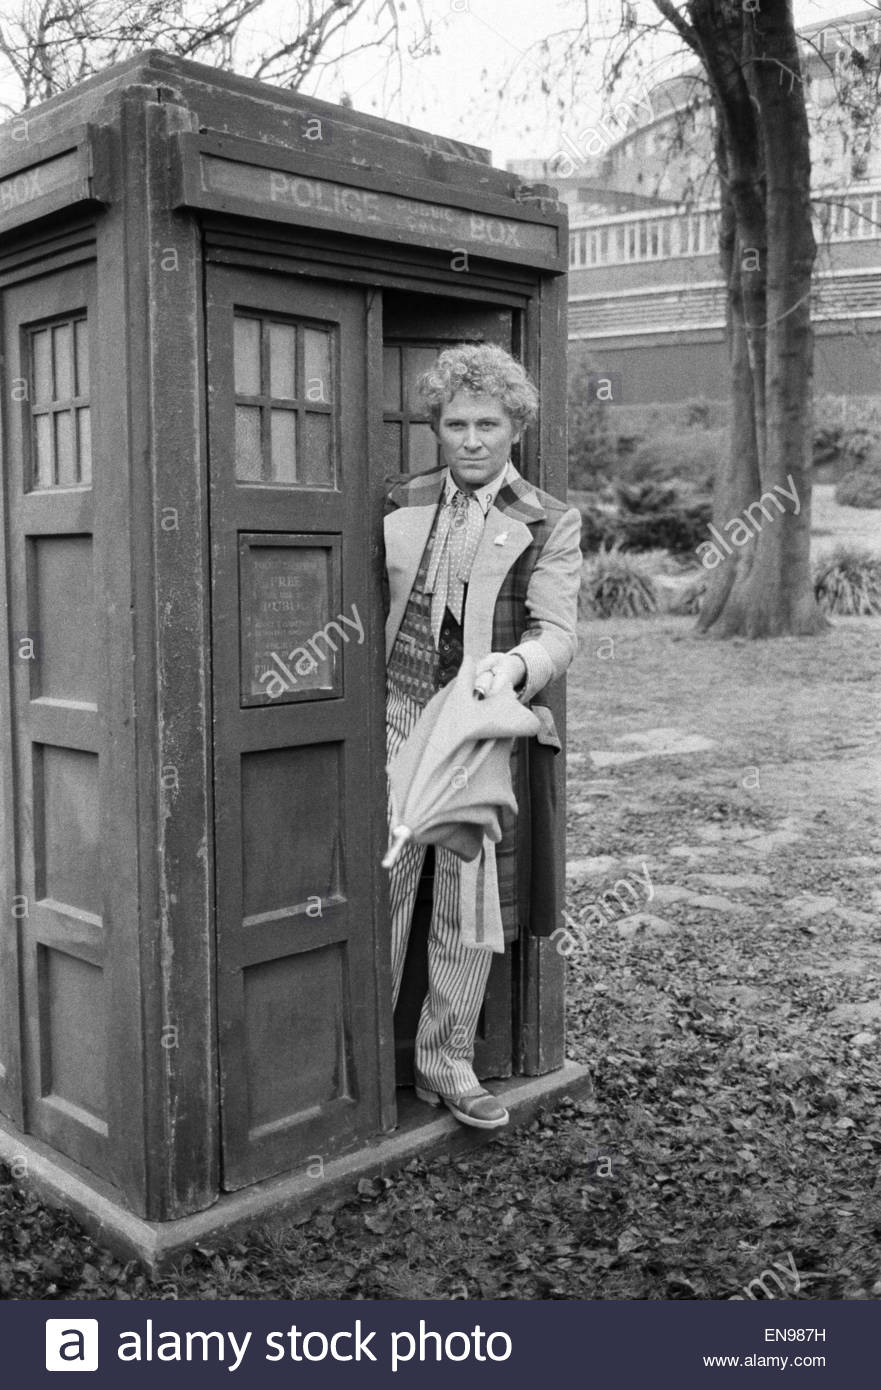 actor-colin-baker-recently-named-as-the-sixth-doctor-who-in-the-bbc-EN987H.jpg